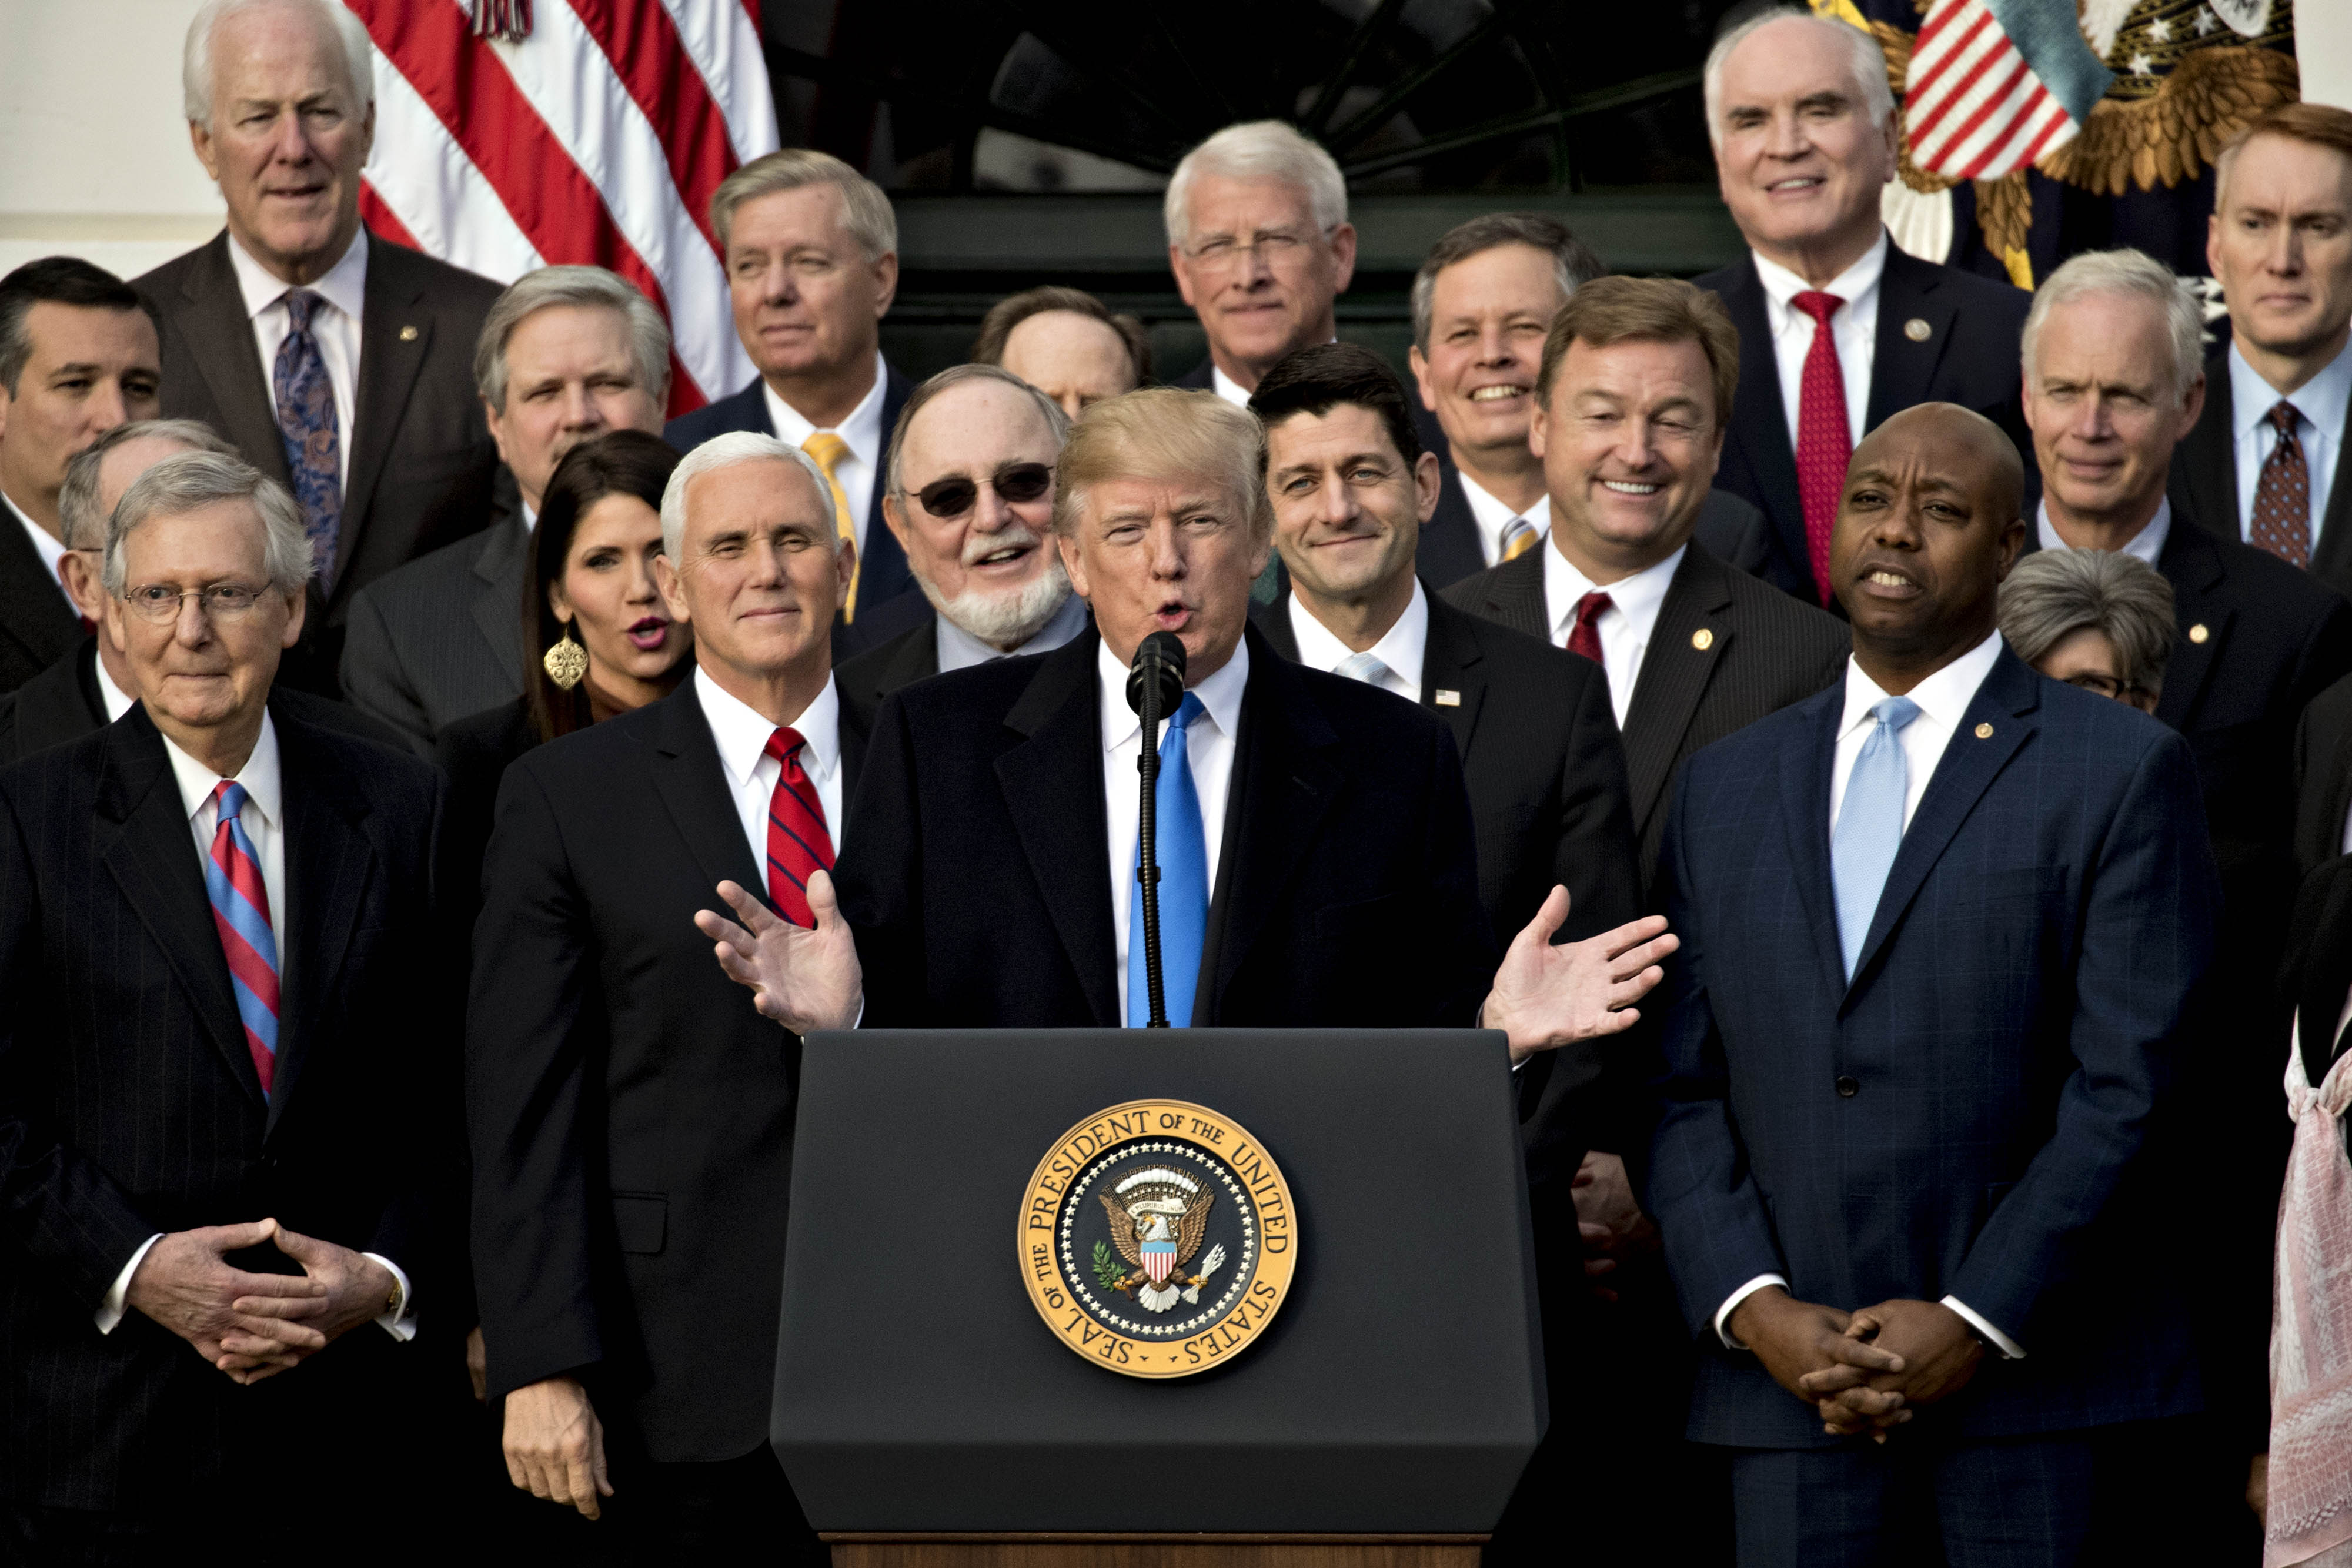 President Donald Trump, center, speaks during a tax bill passage event with Republican congressional members of the House and Senate on the South Lawn of the White House in Washington, D.C., on Dec. 20, 2017.